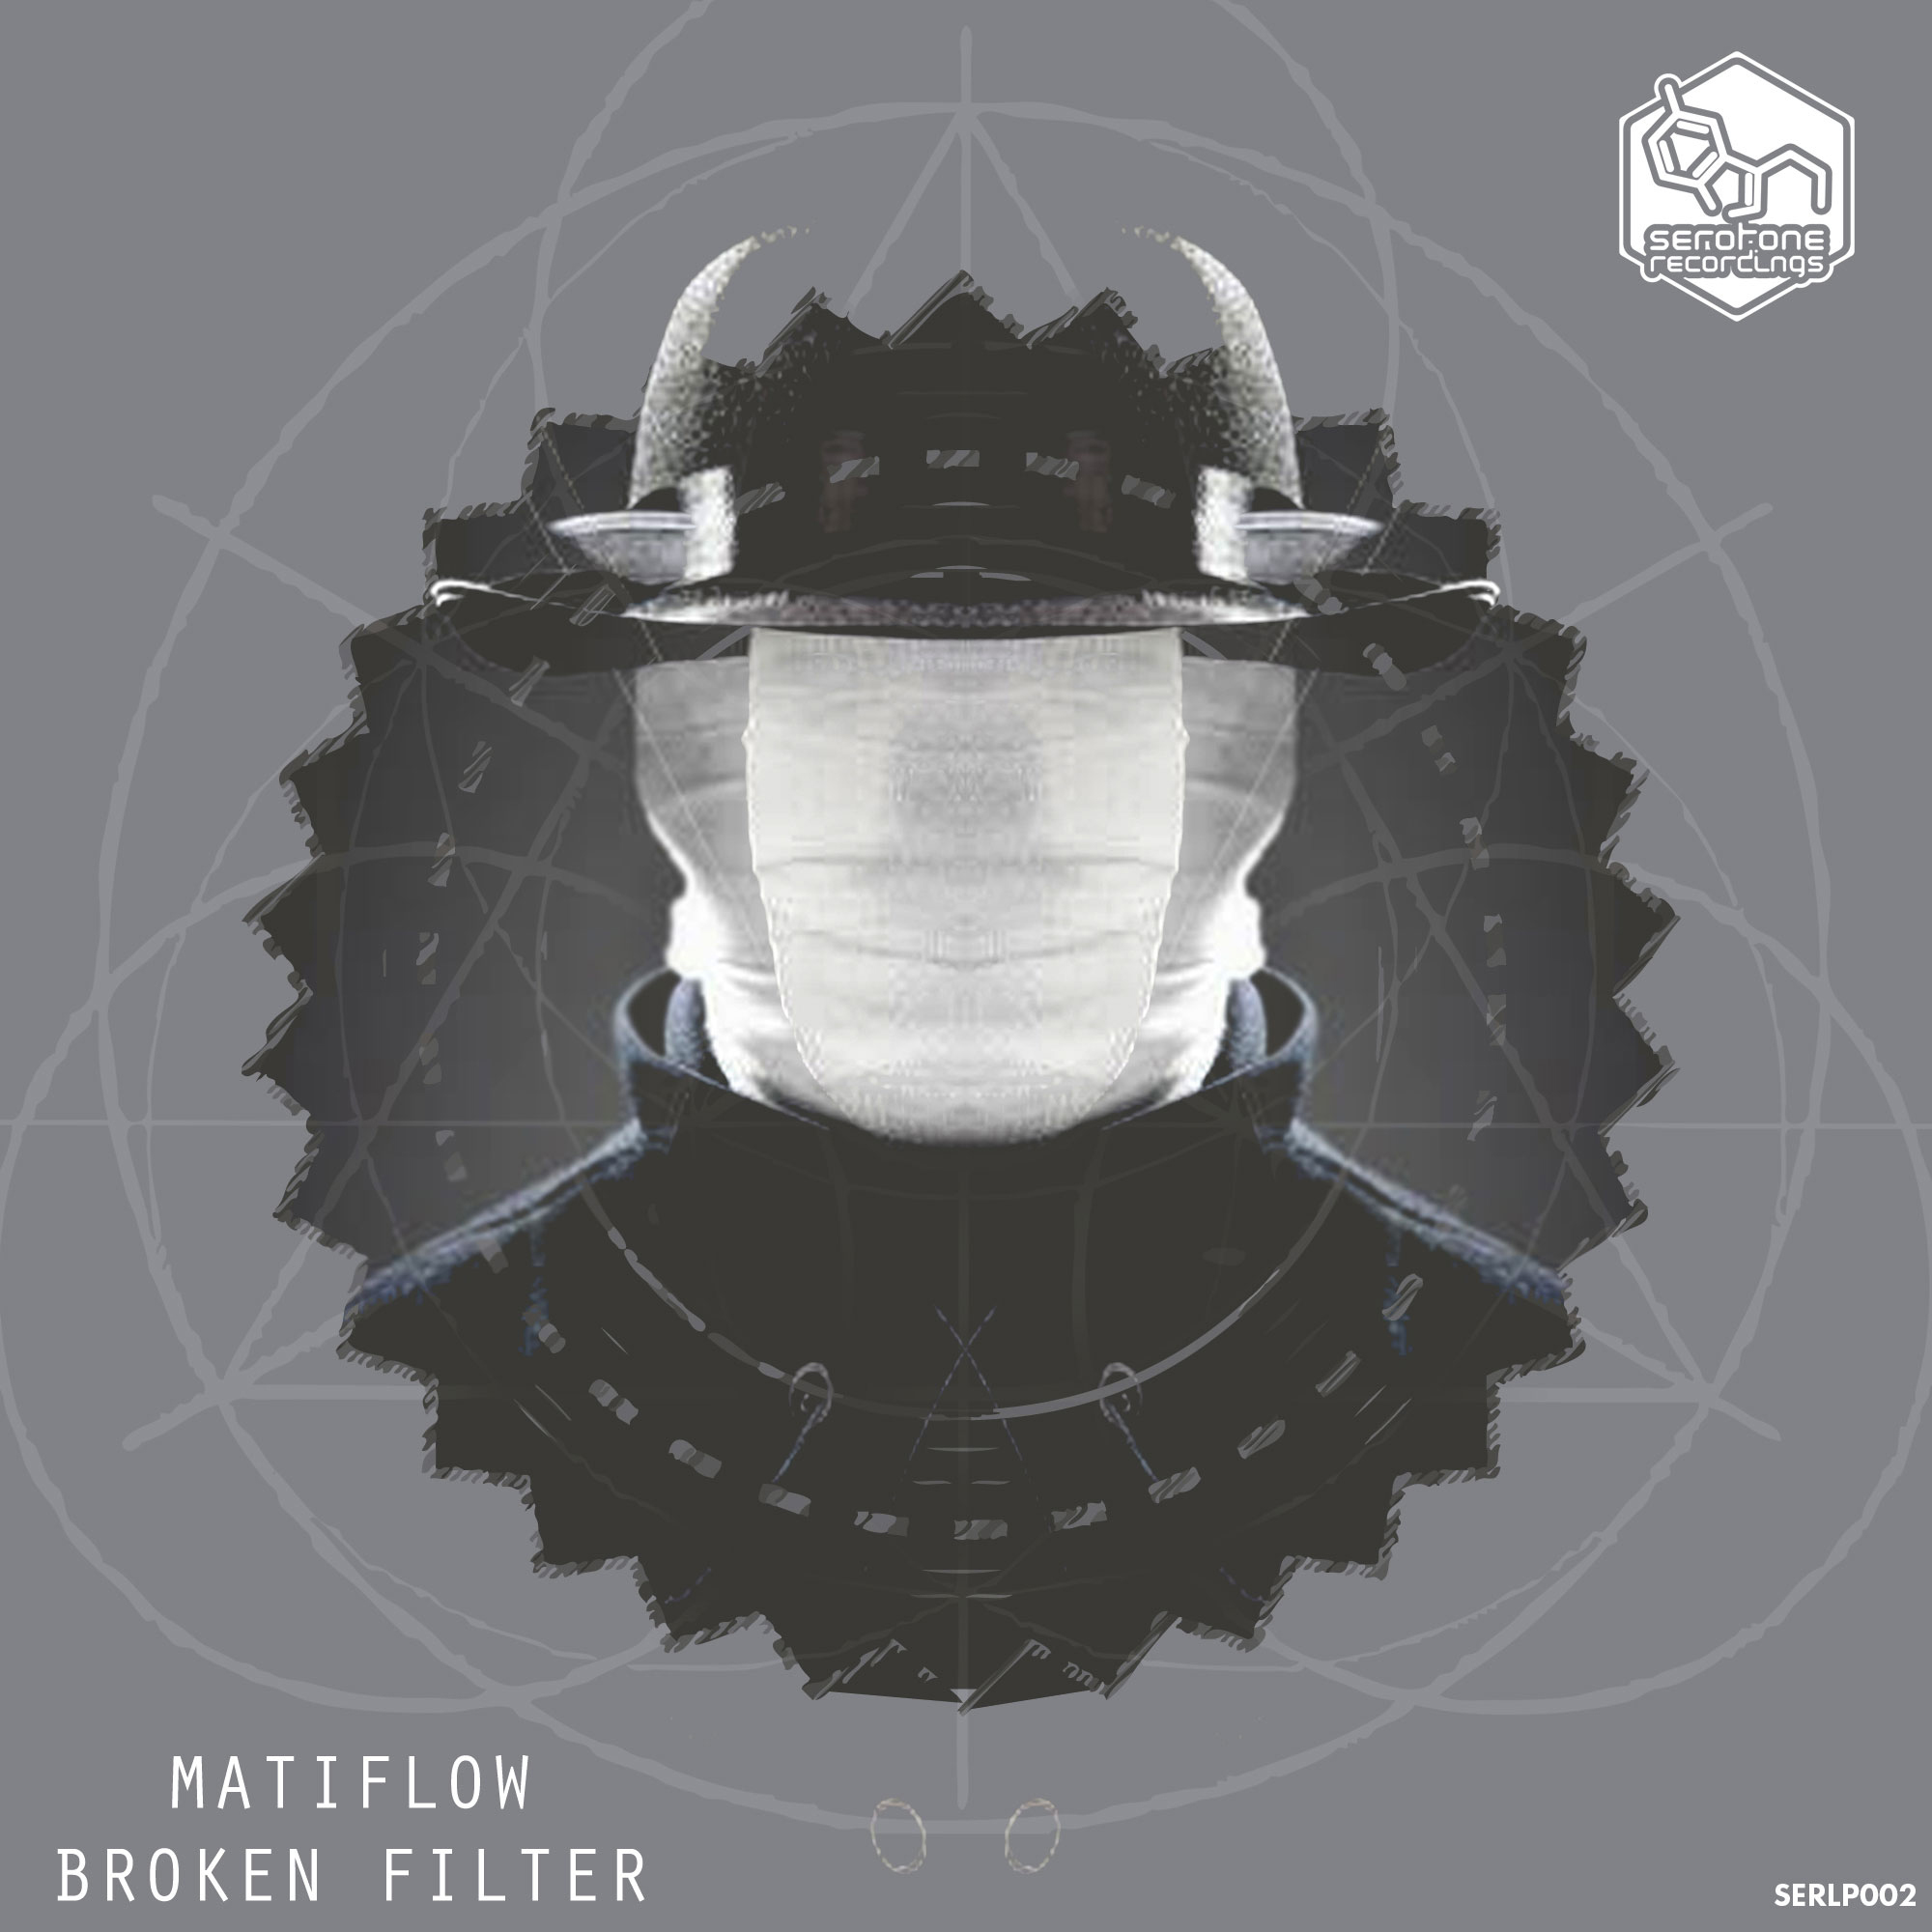 Matiflow return in blistering form with their debut LP 'BROKEN FILTER'.